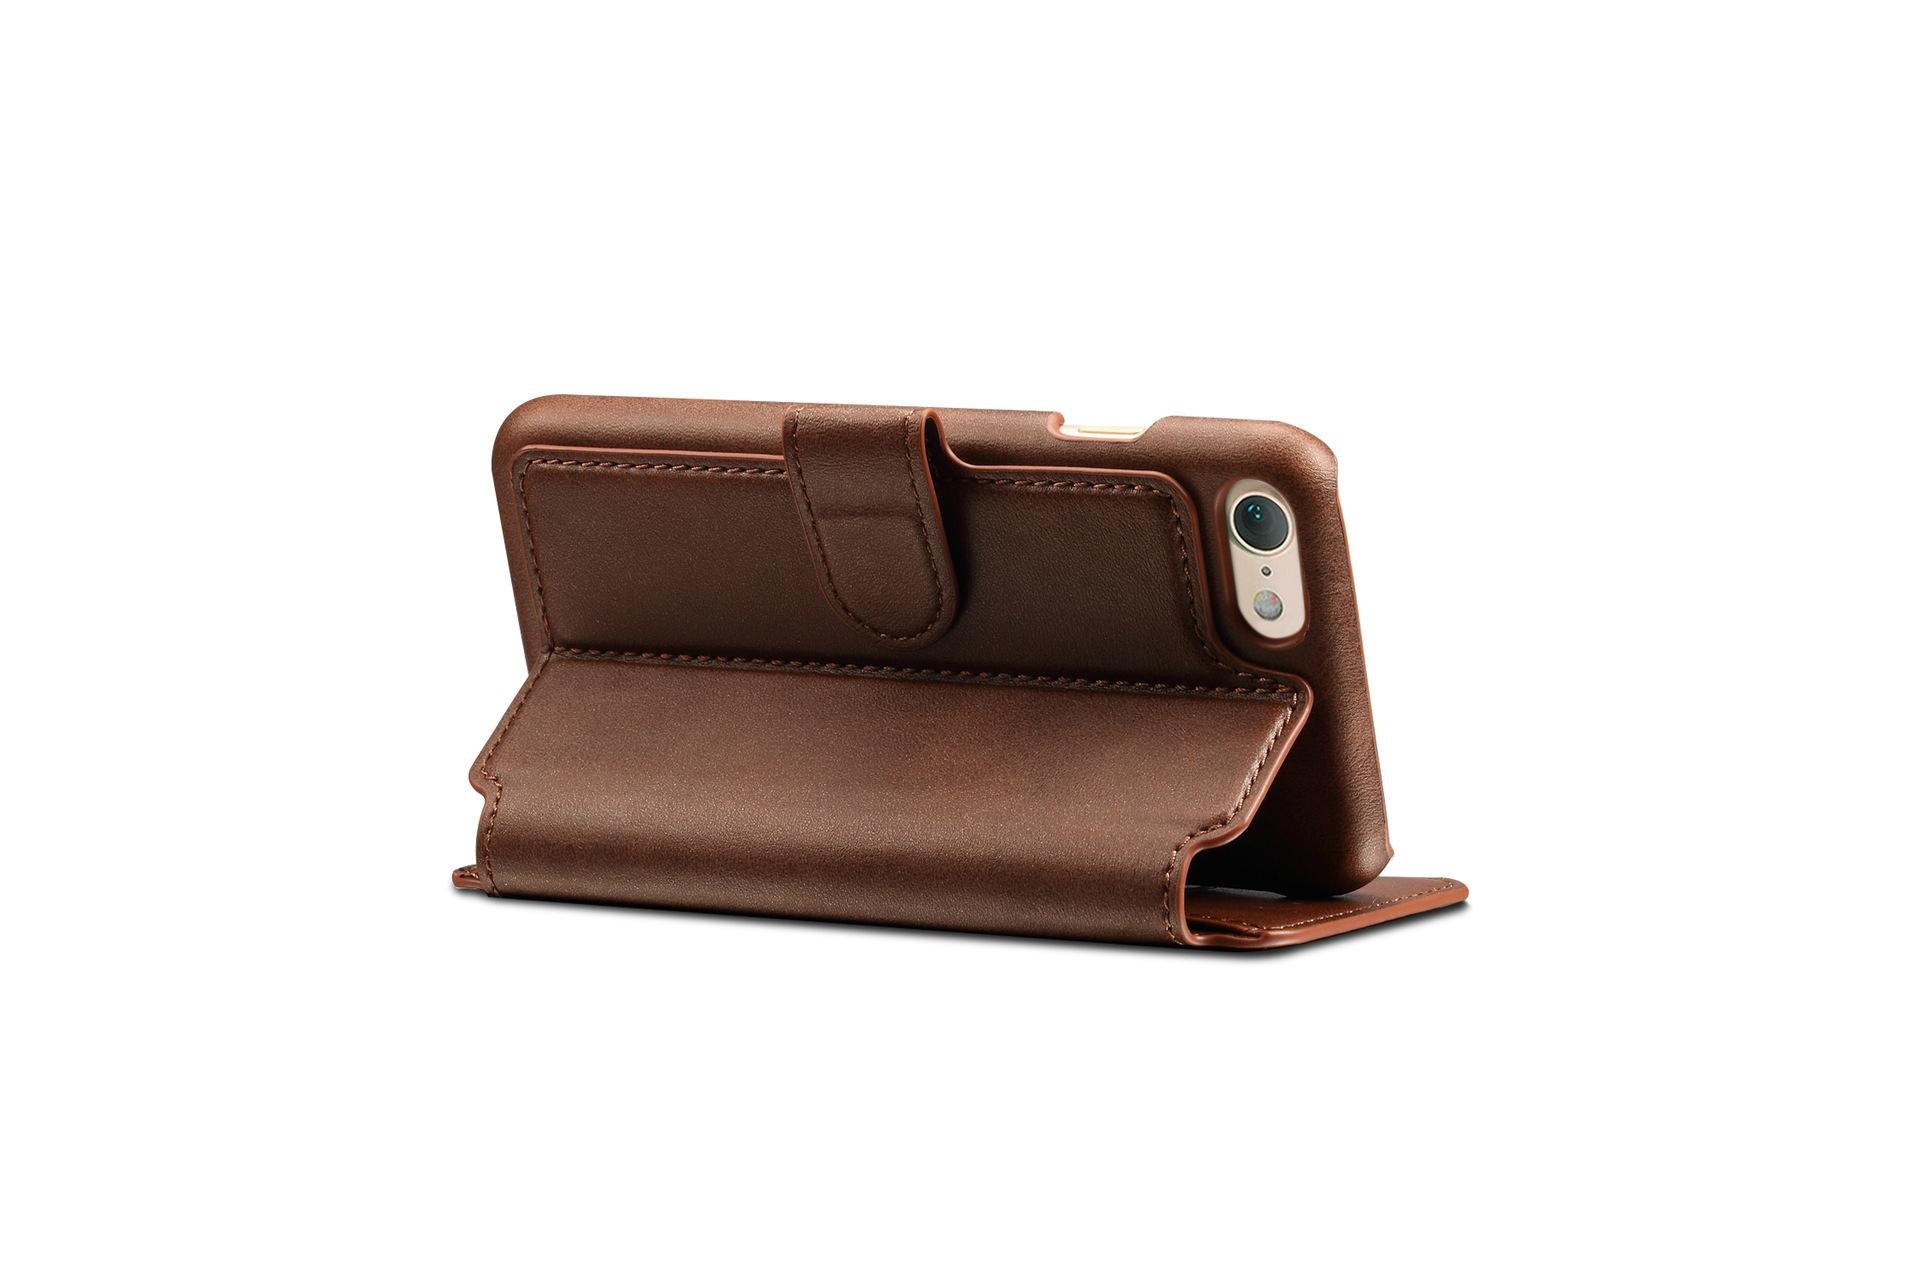 Apple iPhone 7 Flip Cover Stand Wallet Case 12